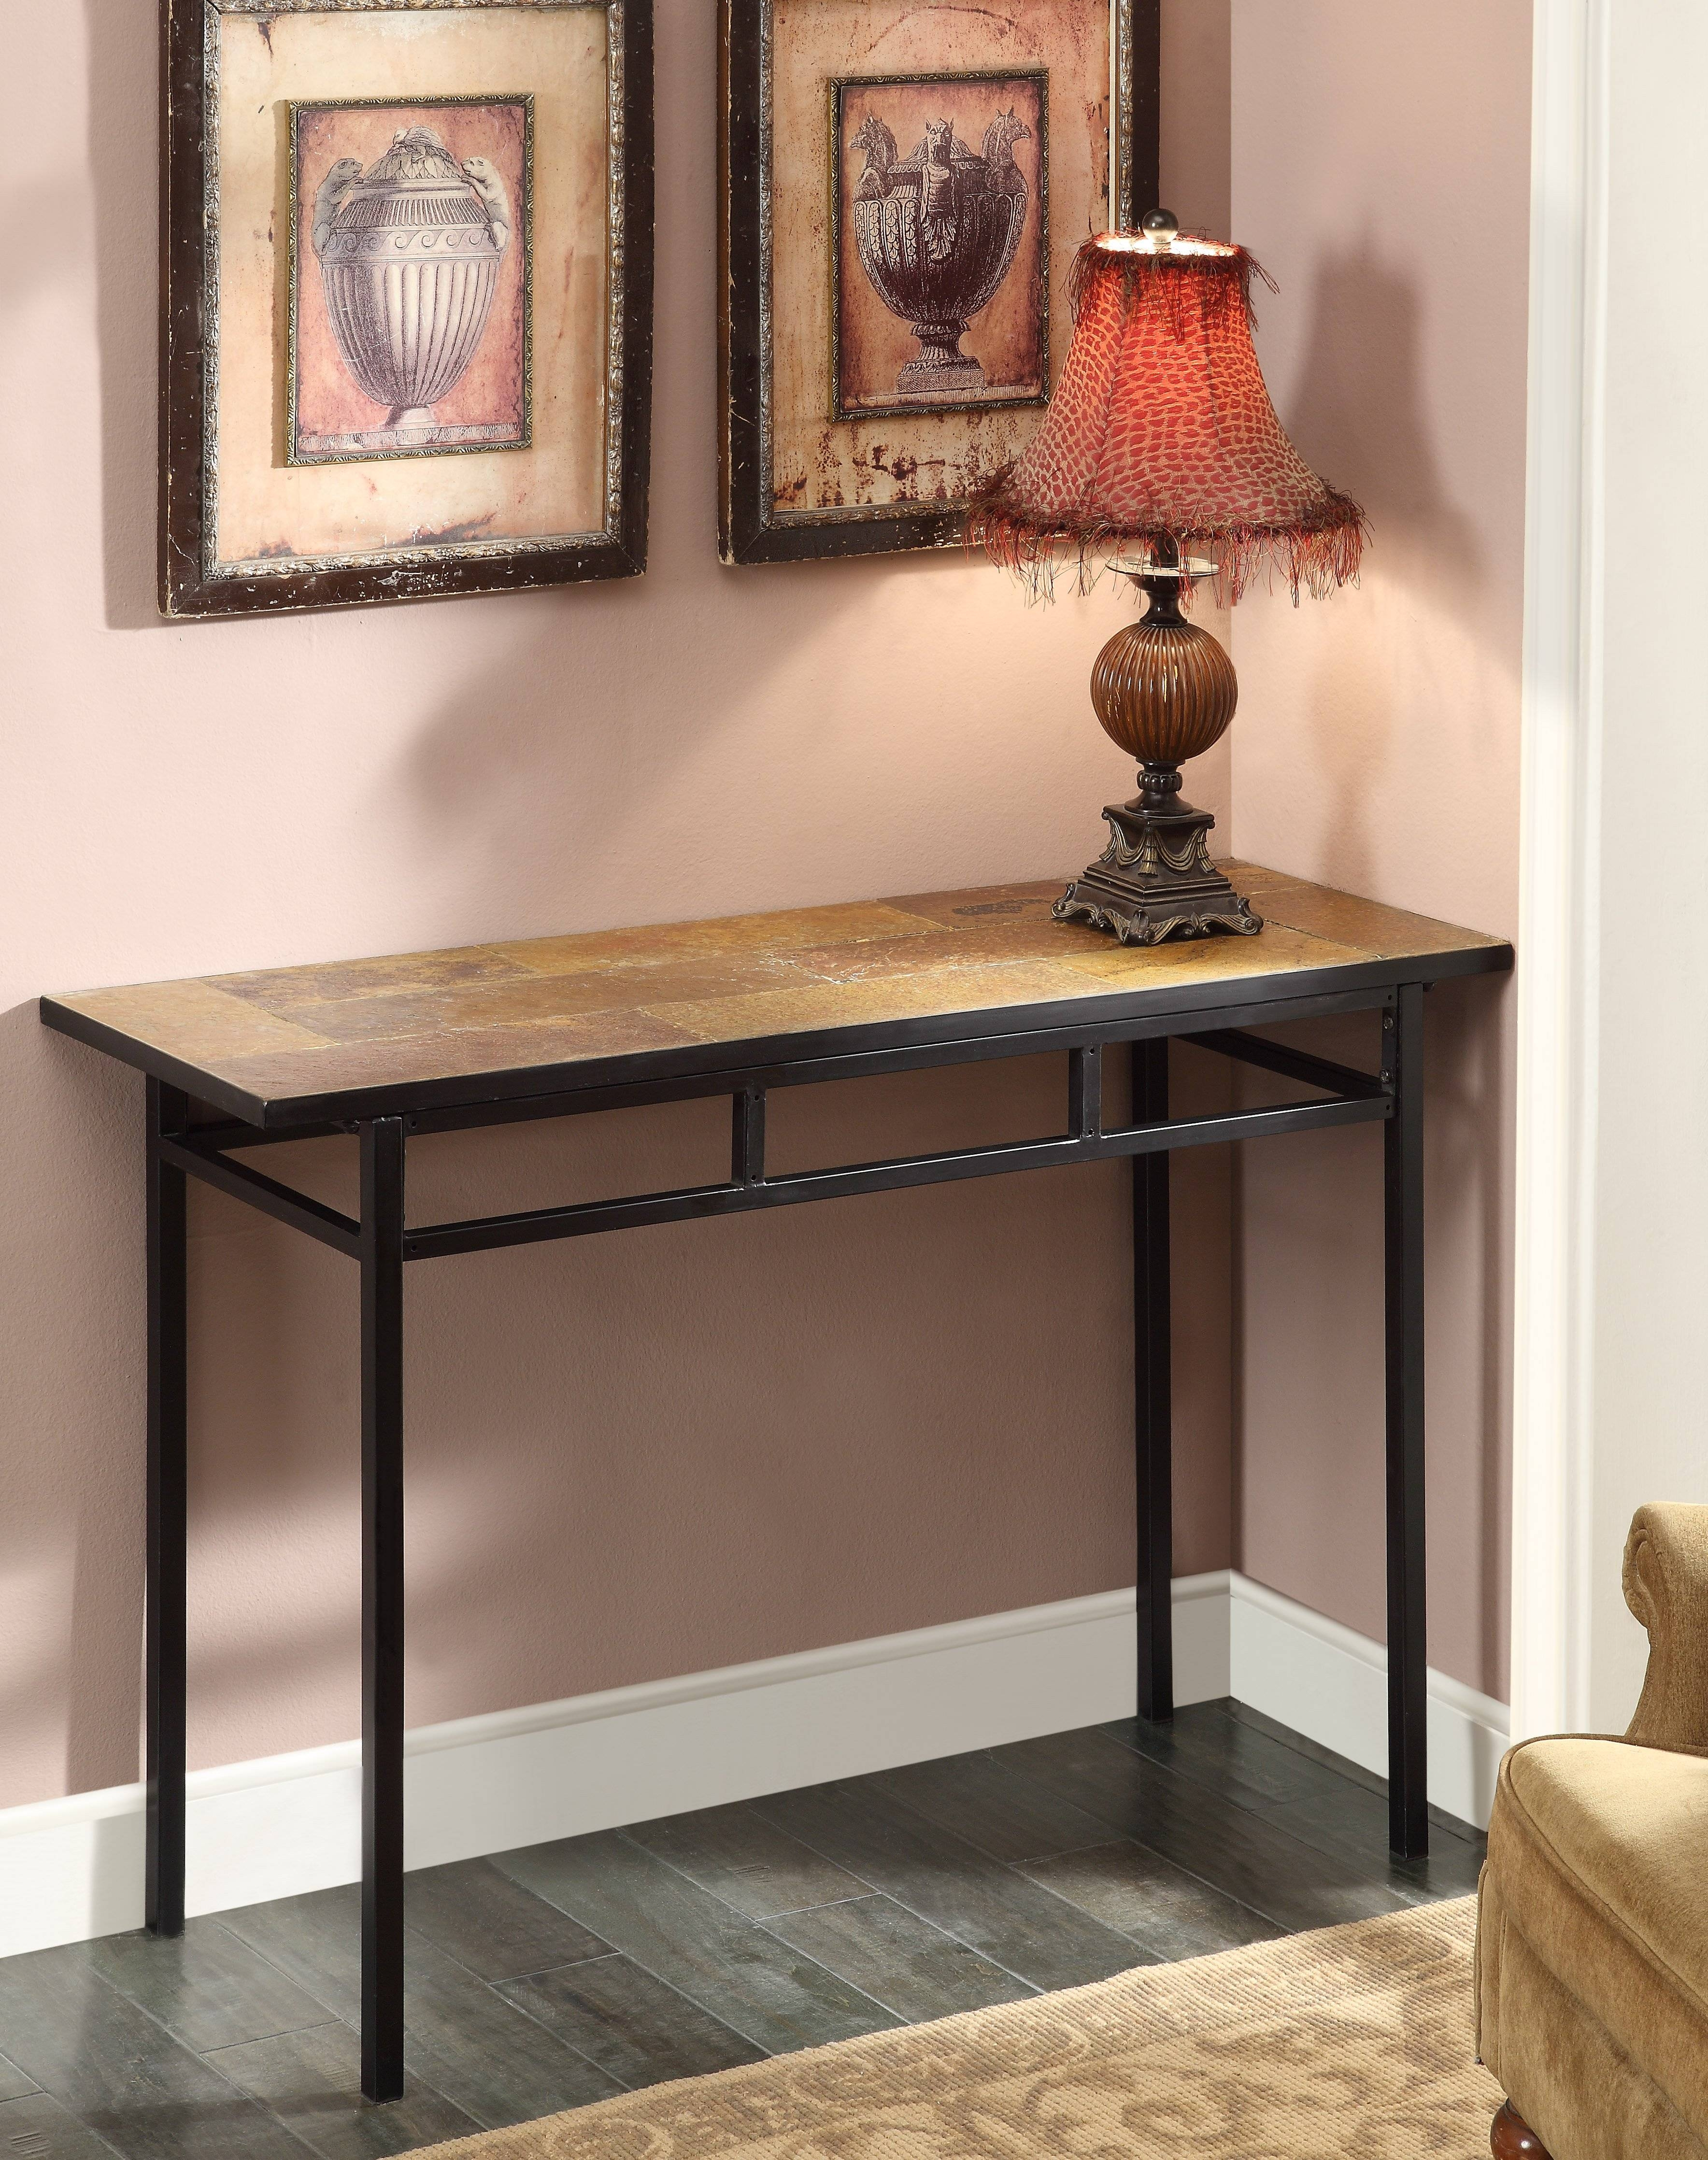 4D Concepts Sofa Table W/ Slate Top In Metal - Beyond Stores pertaining to Slate Sofa Tables (Image 2 of 15)